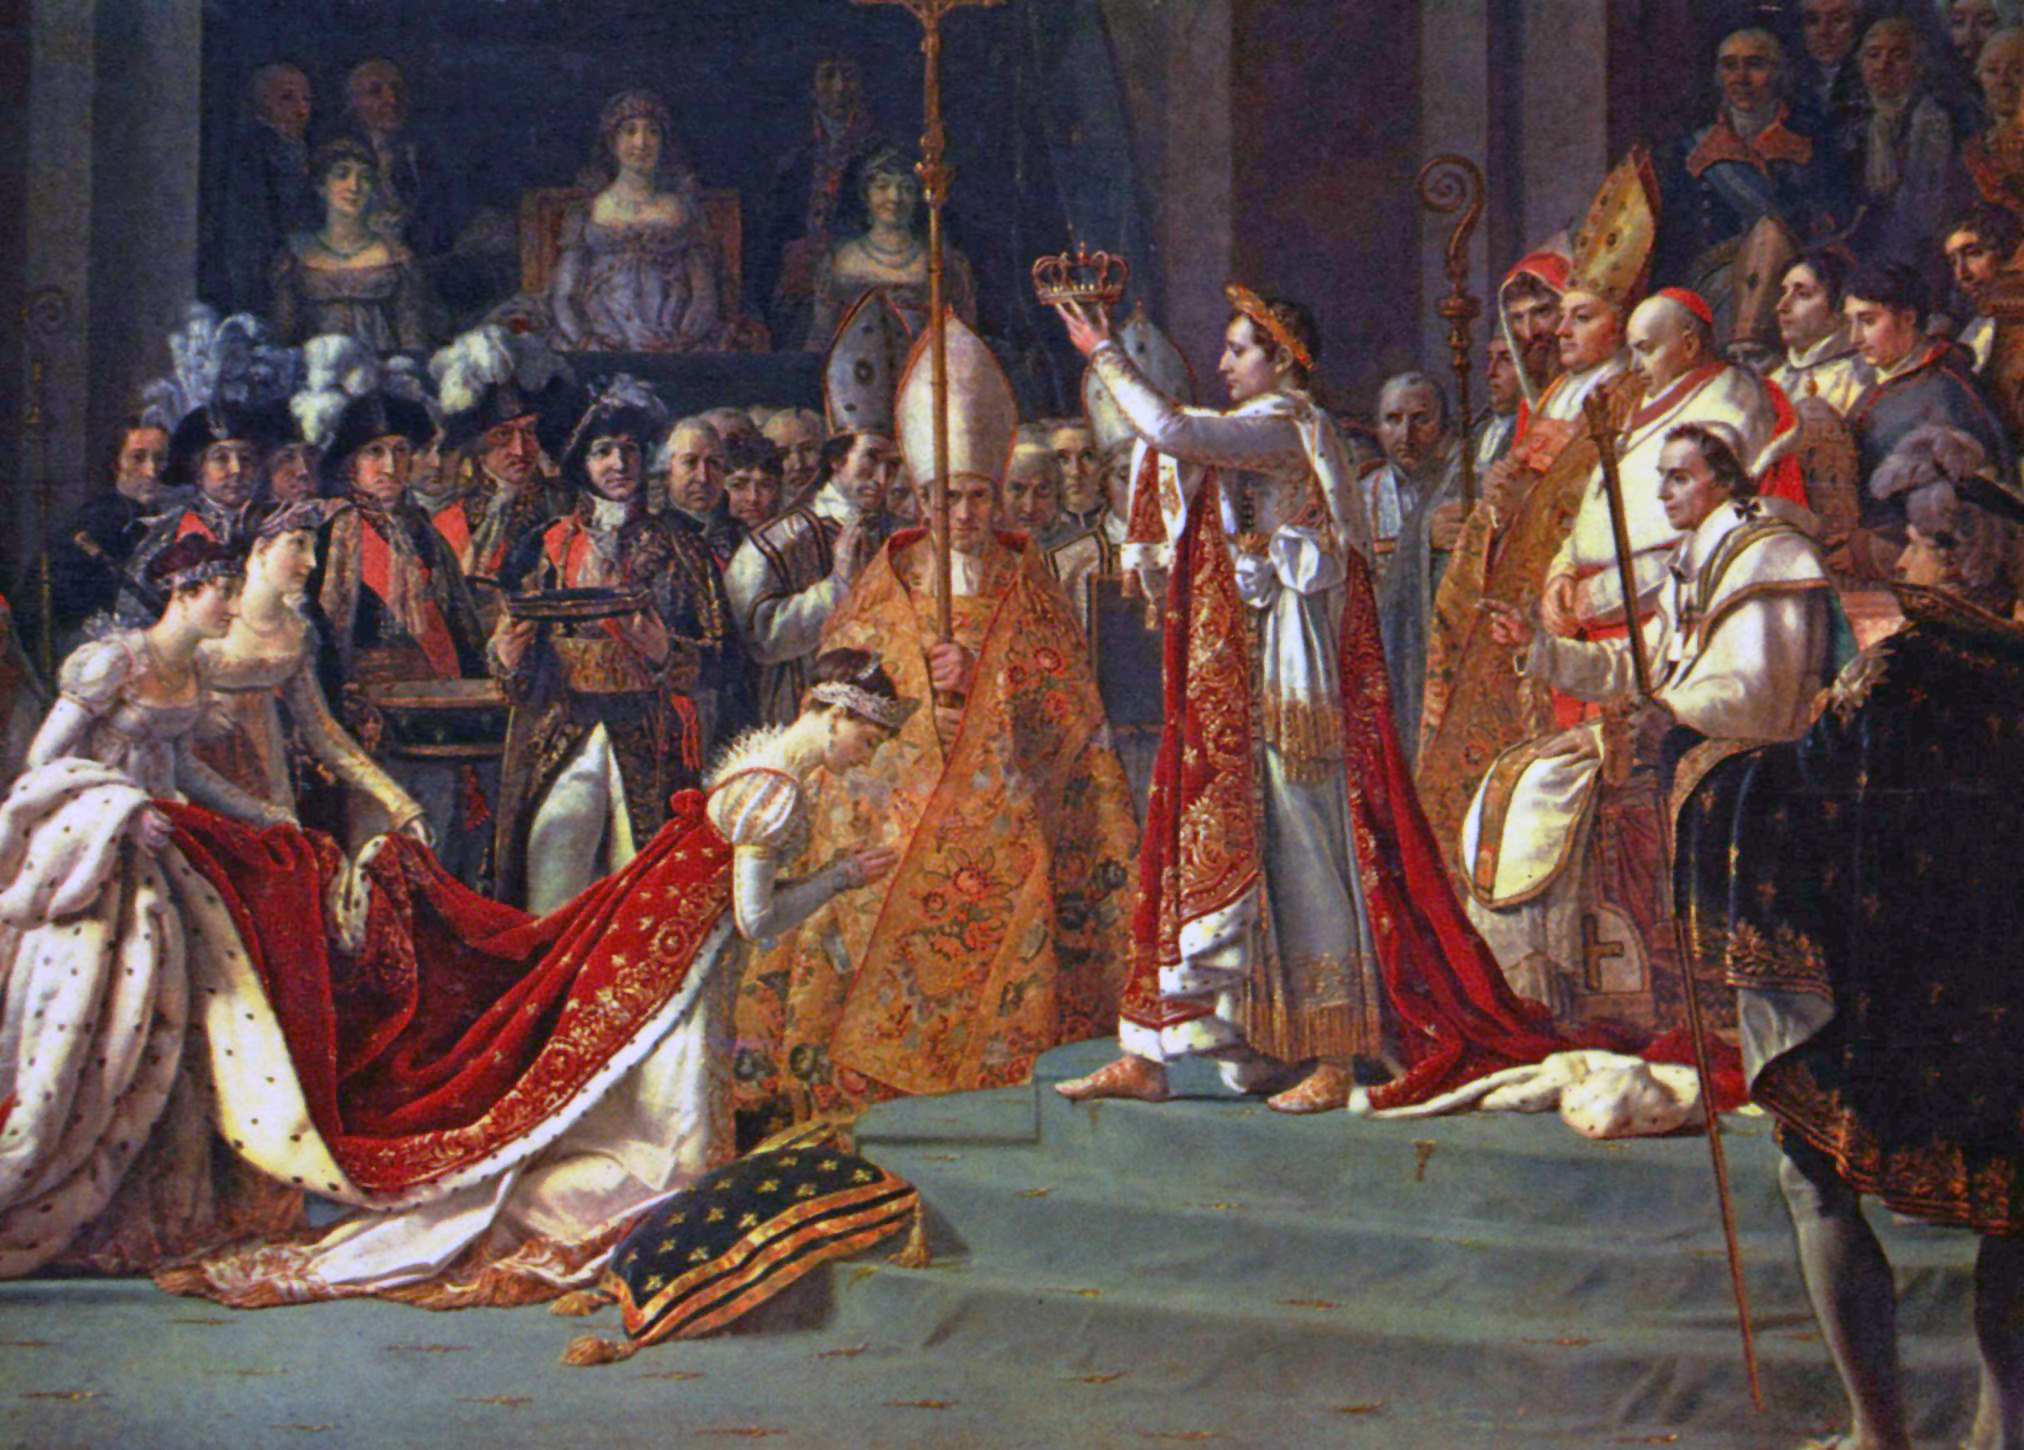 Coronation by Louis David